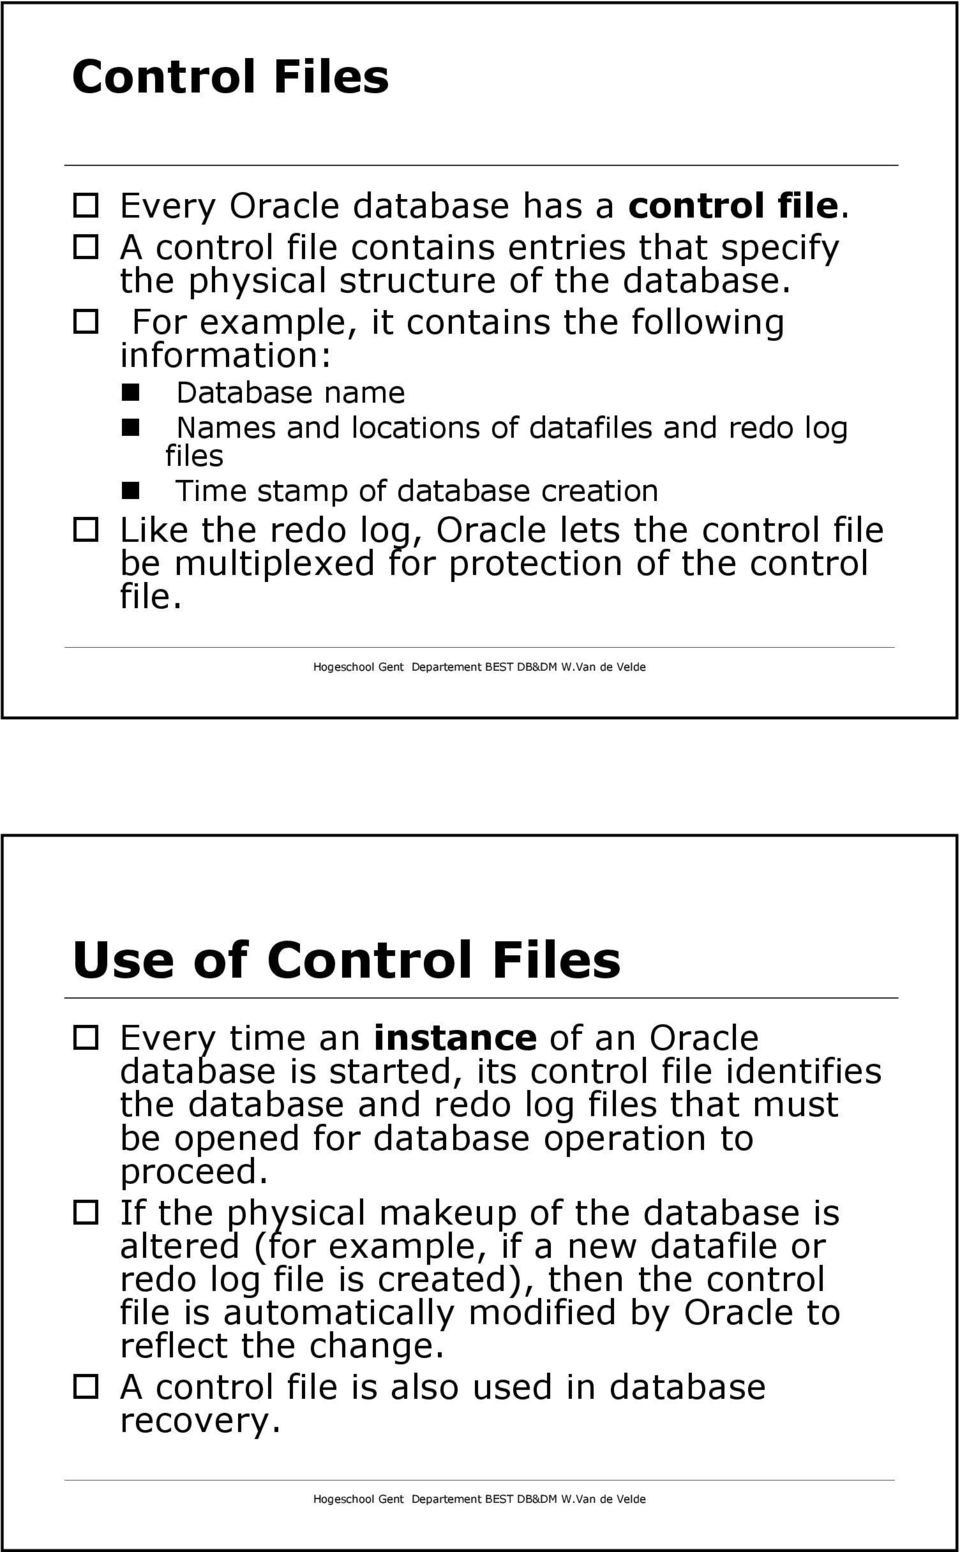 be multiplexed for protection of the control file.